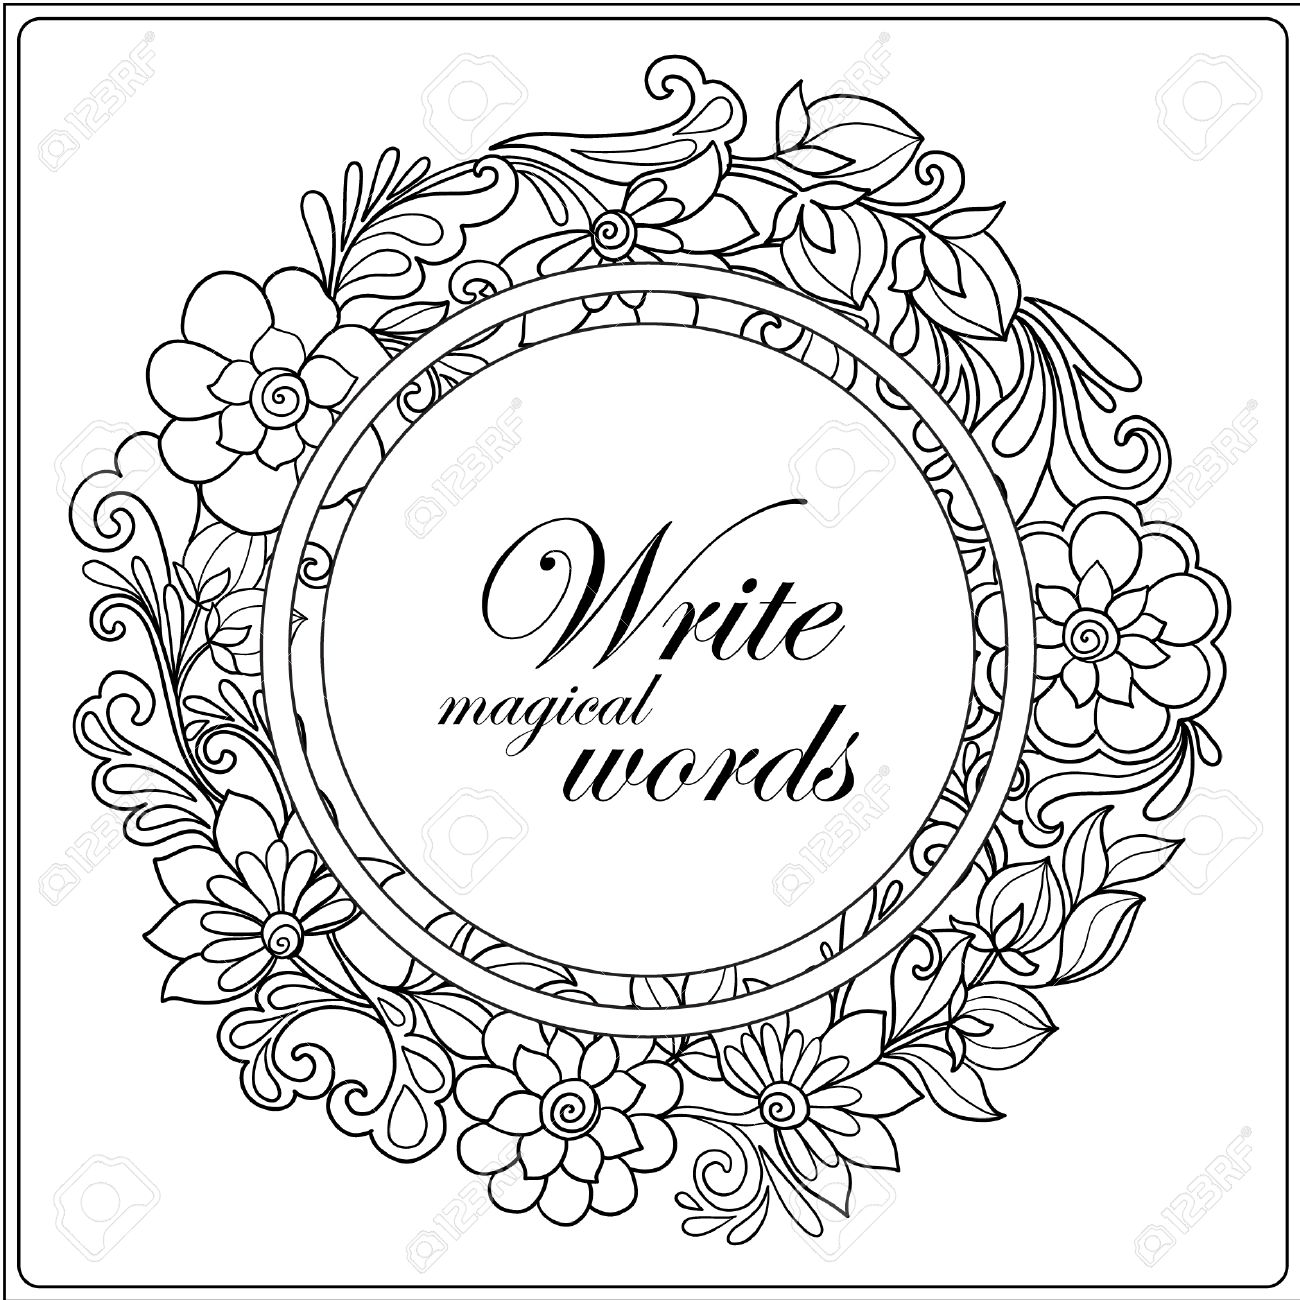 coloring book for adult and older children coloring page with decorative floral frame and space